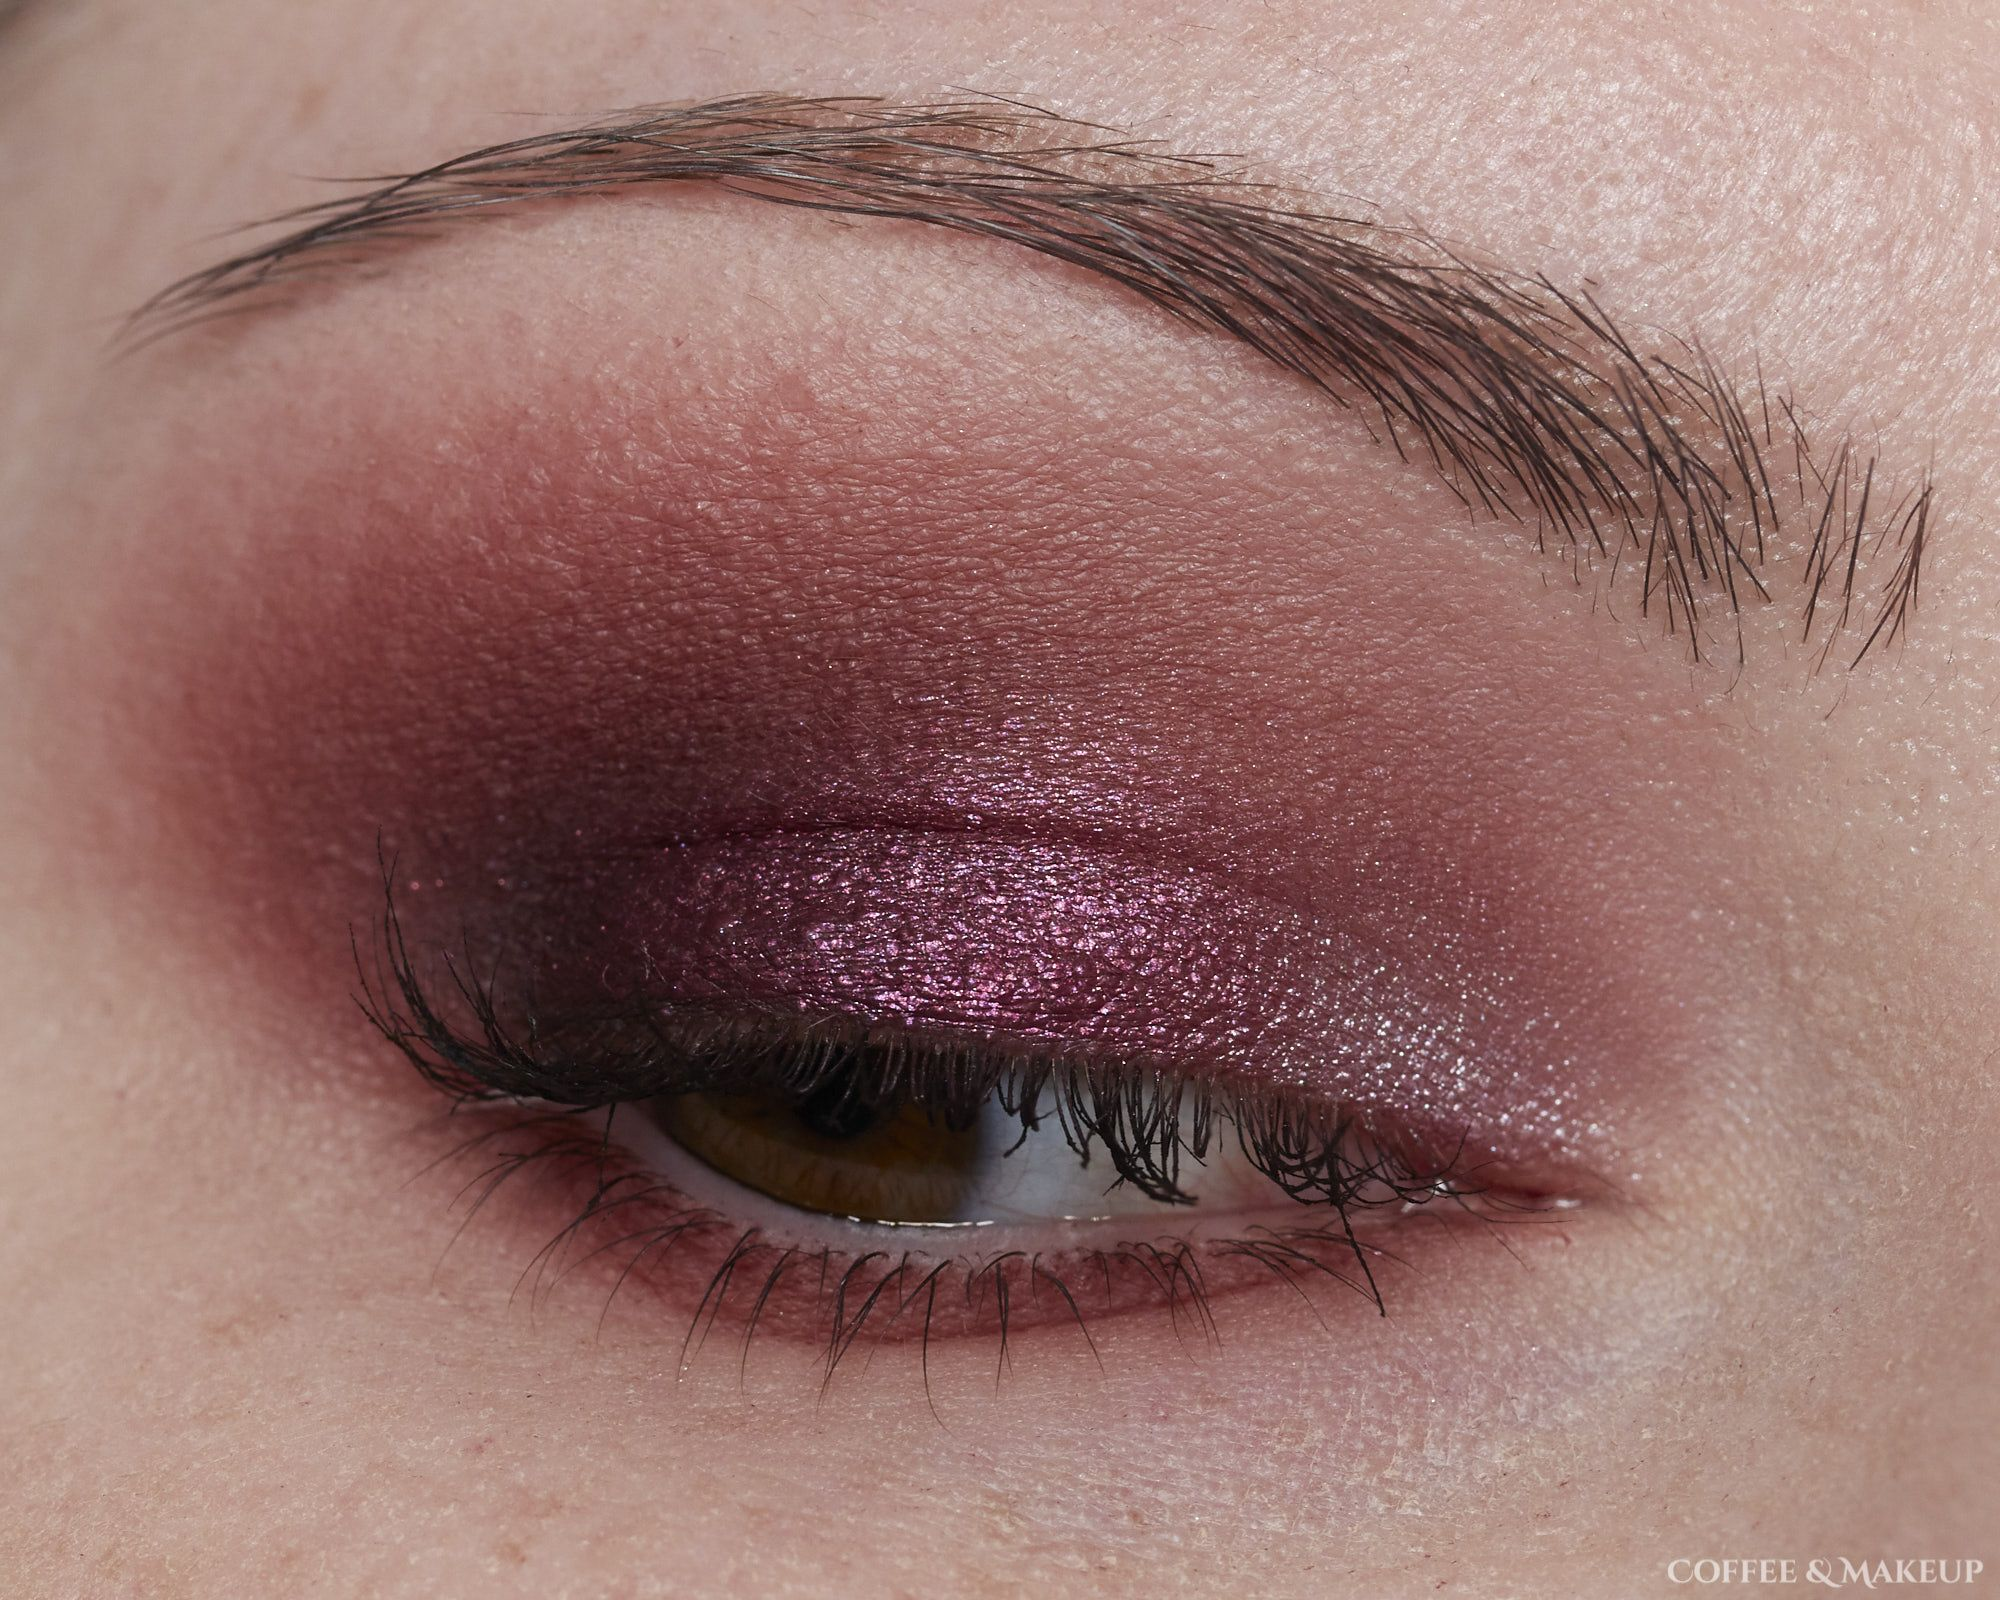 Makeup Geek Eyeshadow Look 5 Coffee Makeup In 2020 Makeup Geek Eyeshadow Makeup Geek Eyeshadow Looks